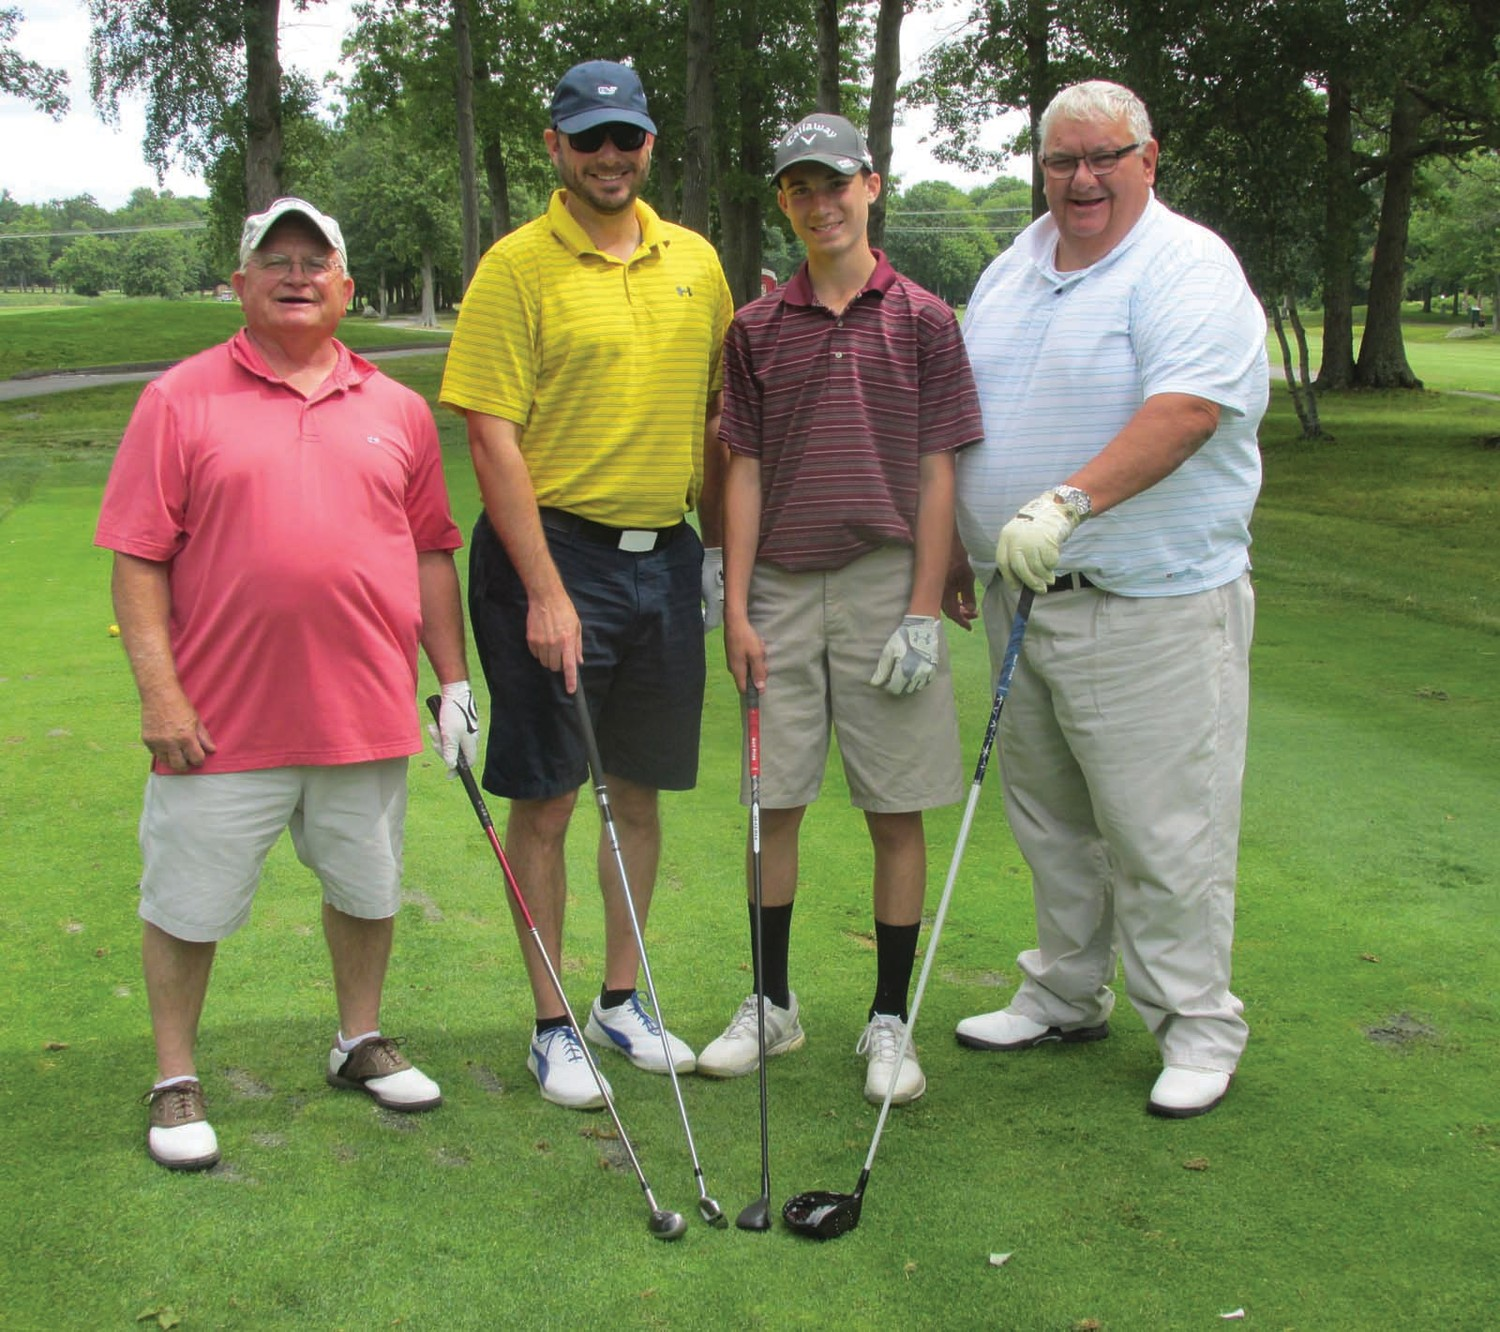 GENERATION GOLFERS: Above, Ray Ouellette (left) played in this foursome of three generations of the Dutelle family – Ray Jr., Keegen and Ray Sr. during the first-ever Our Lady of Grace Golf Tournament.